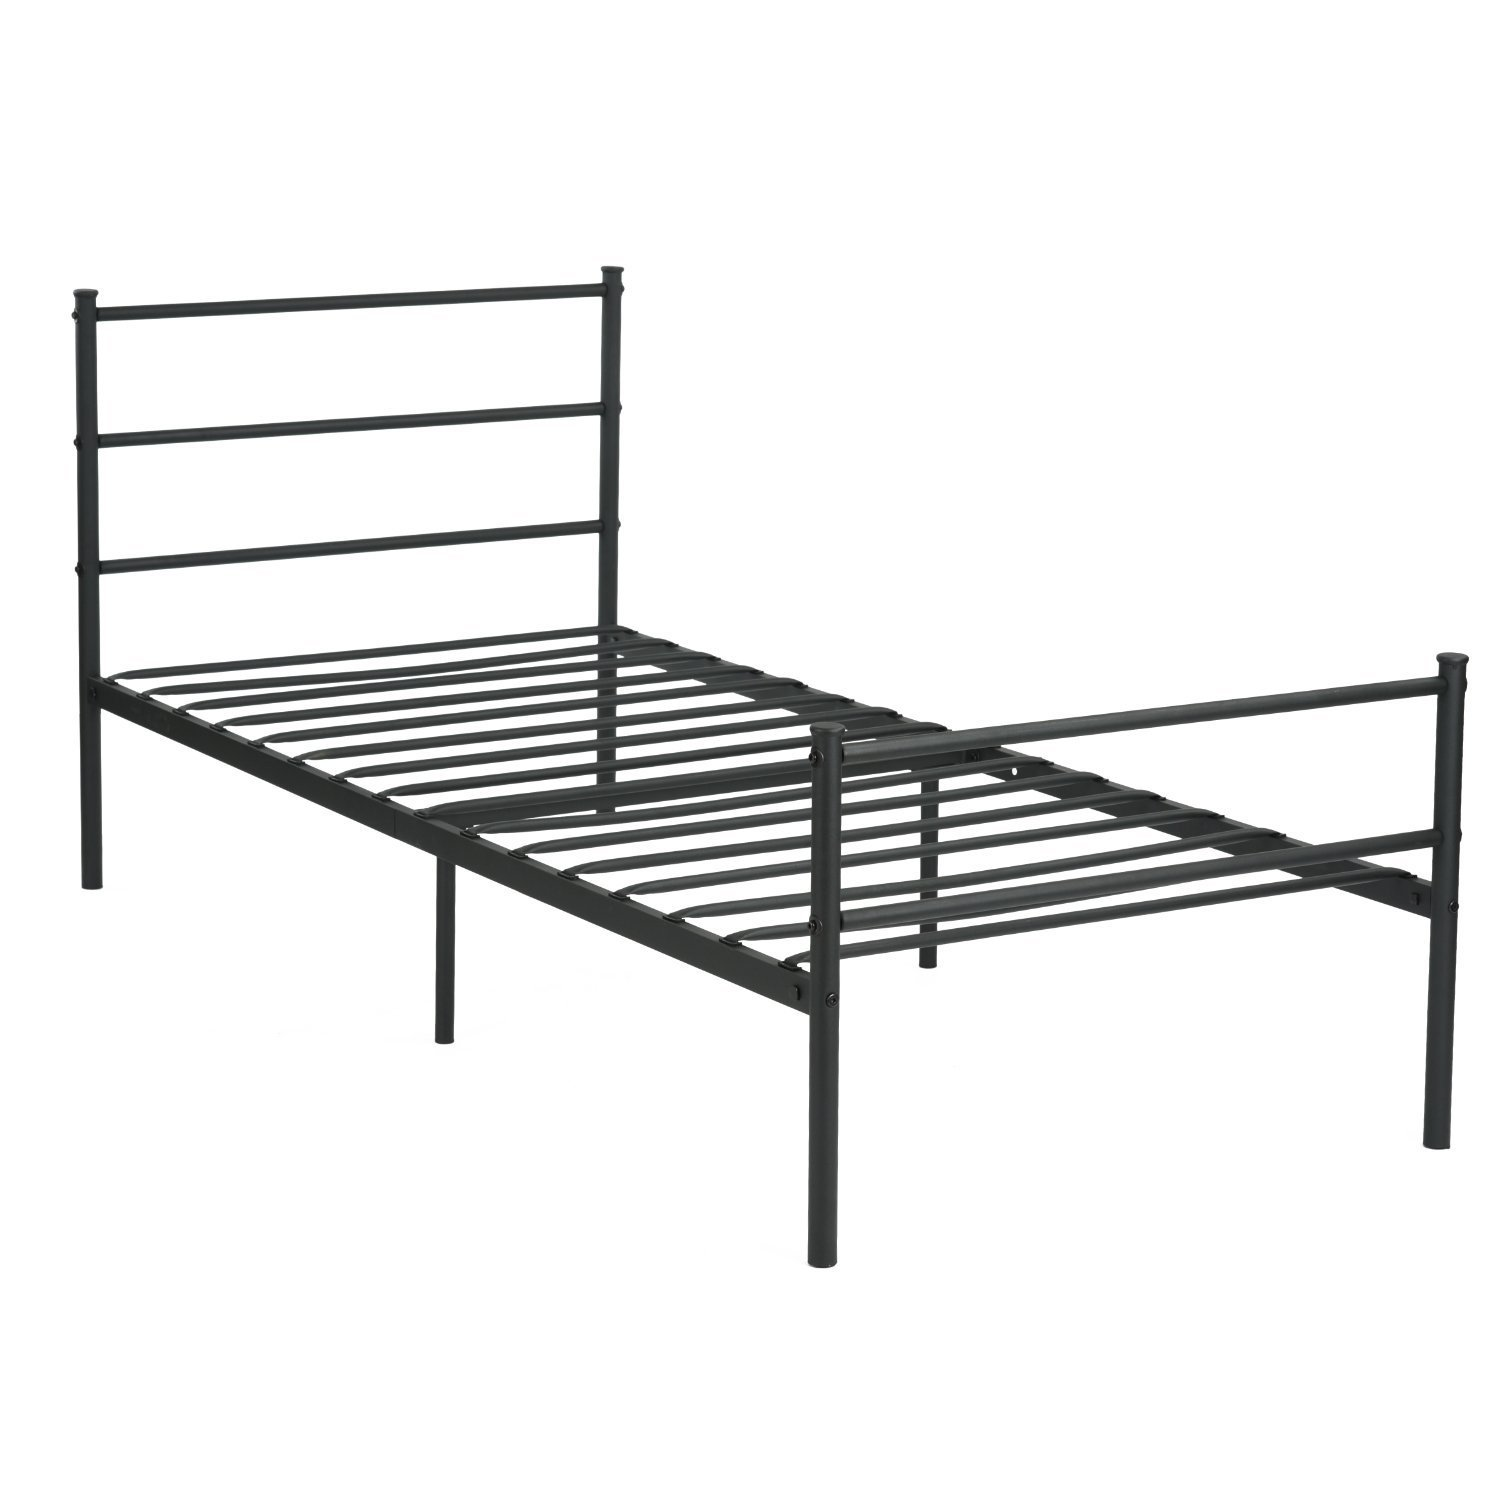 metal bed frame twin mattress set bed mattress weekly special rochester overstock. Black Bedroom Furniture Sets. Home Design Ideas